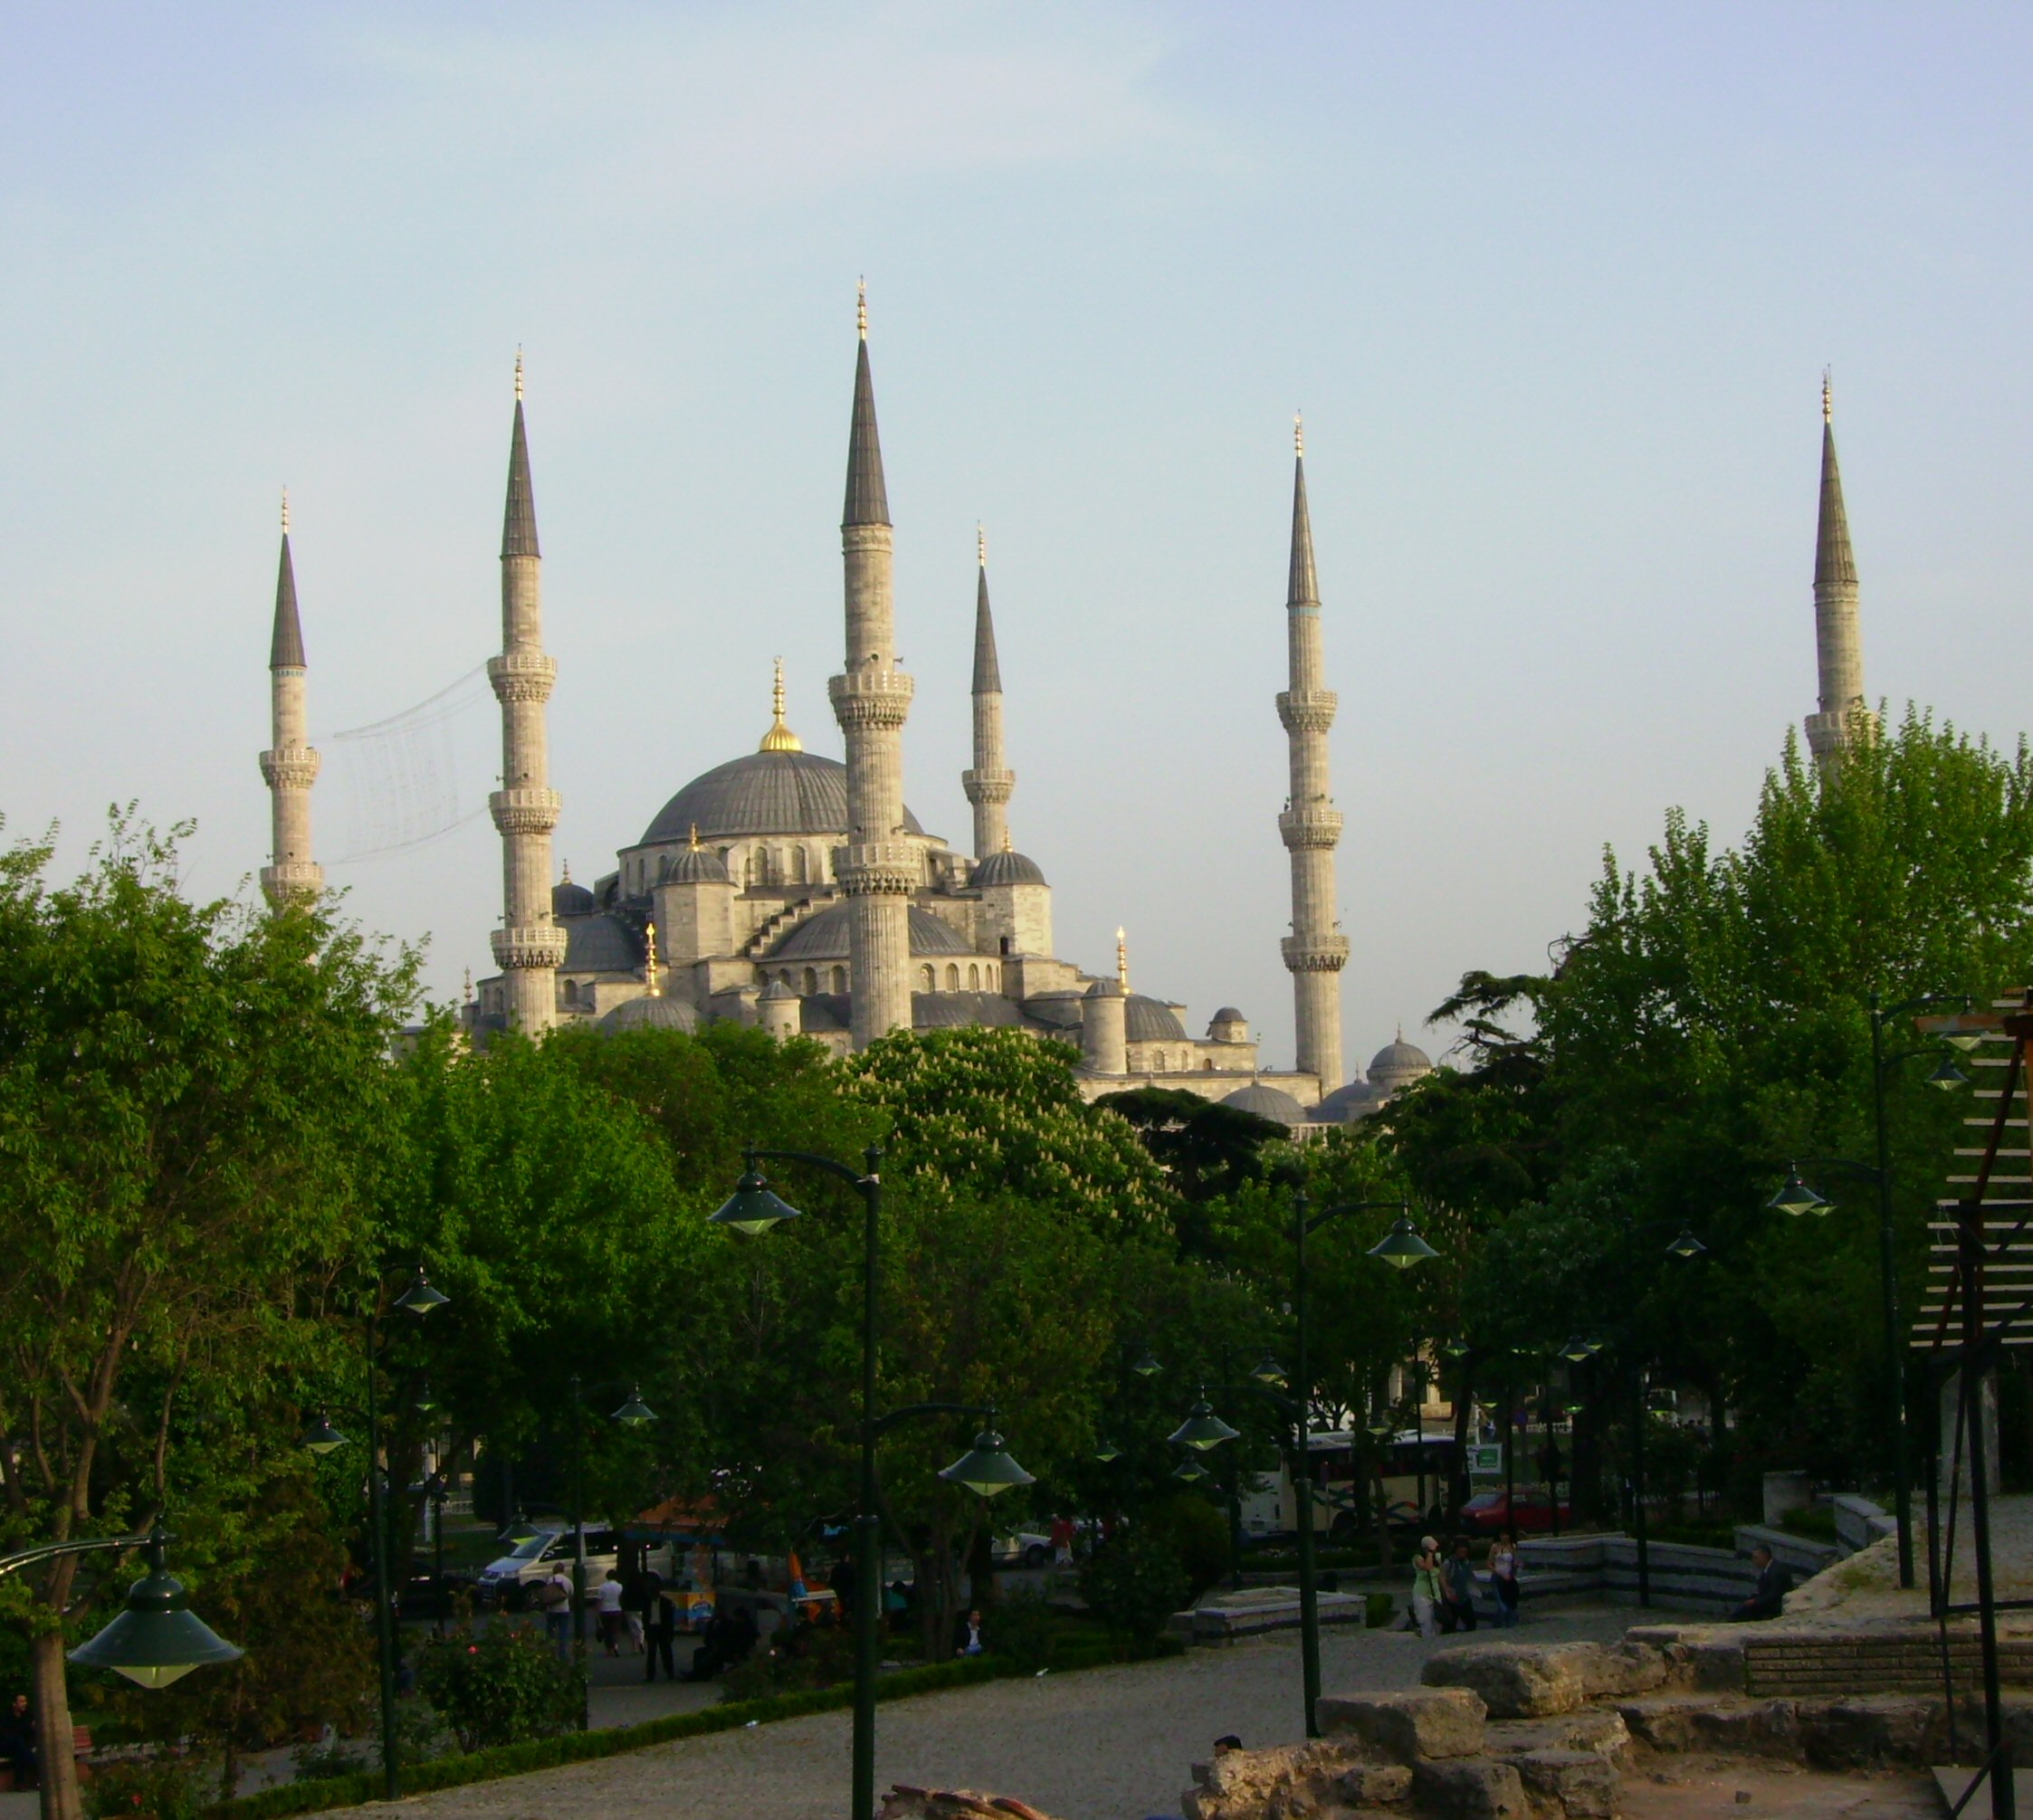 The six minareted Blue Mosque or Sultan Ahmed Mosque in Istanbul ...